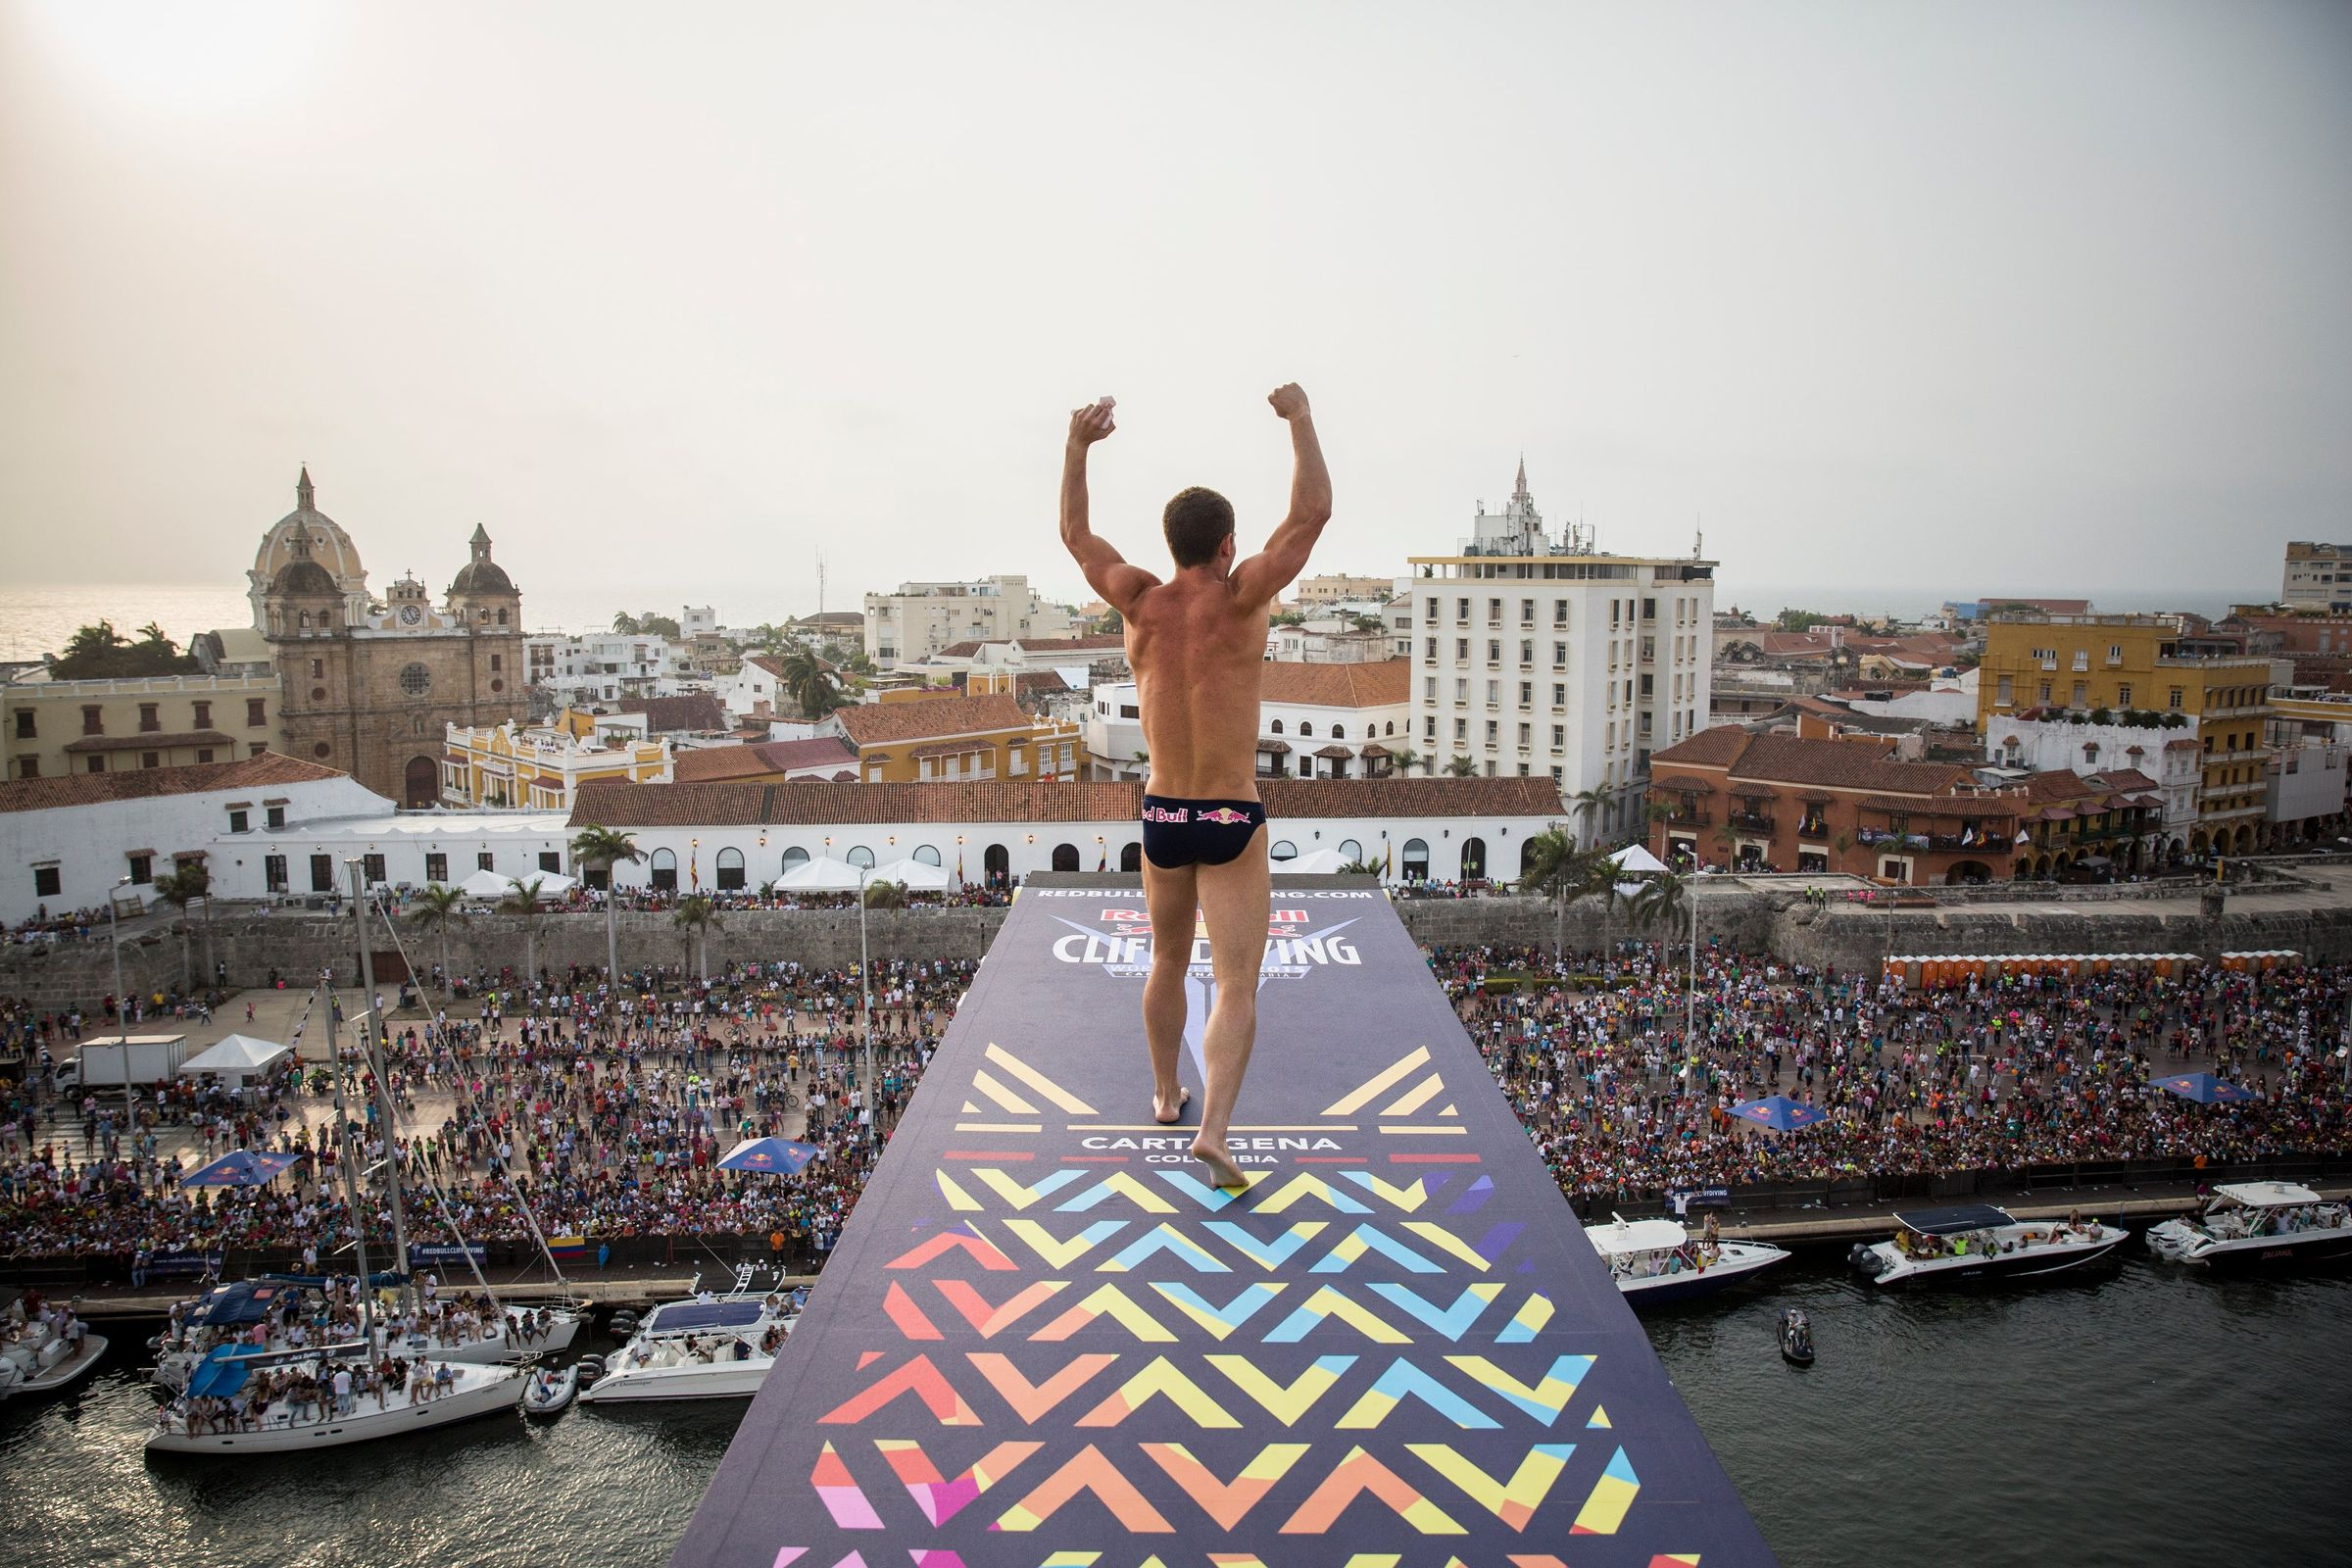 Orlando duque rachelle simpson win at fina high diving world cup - Red bull high dive ...